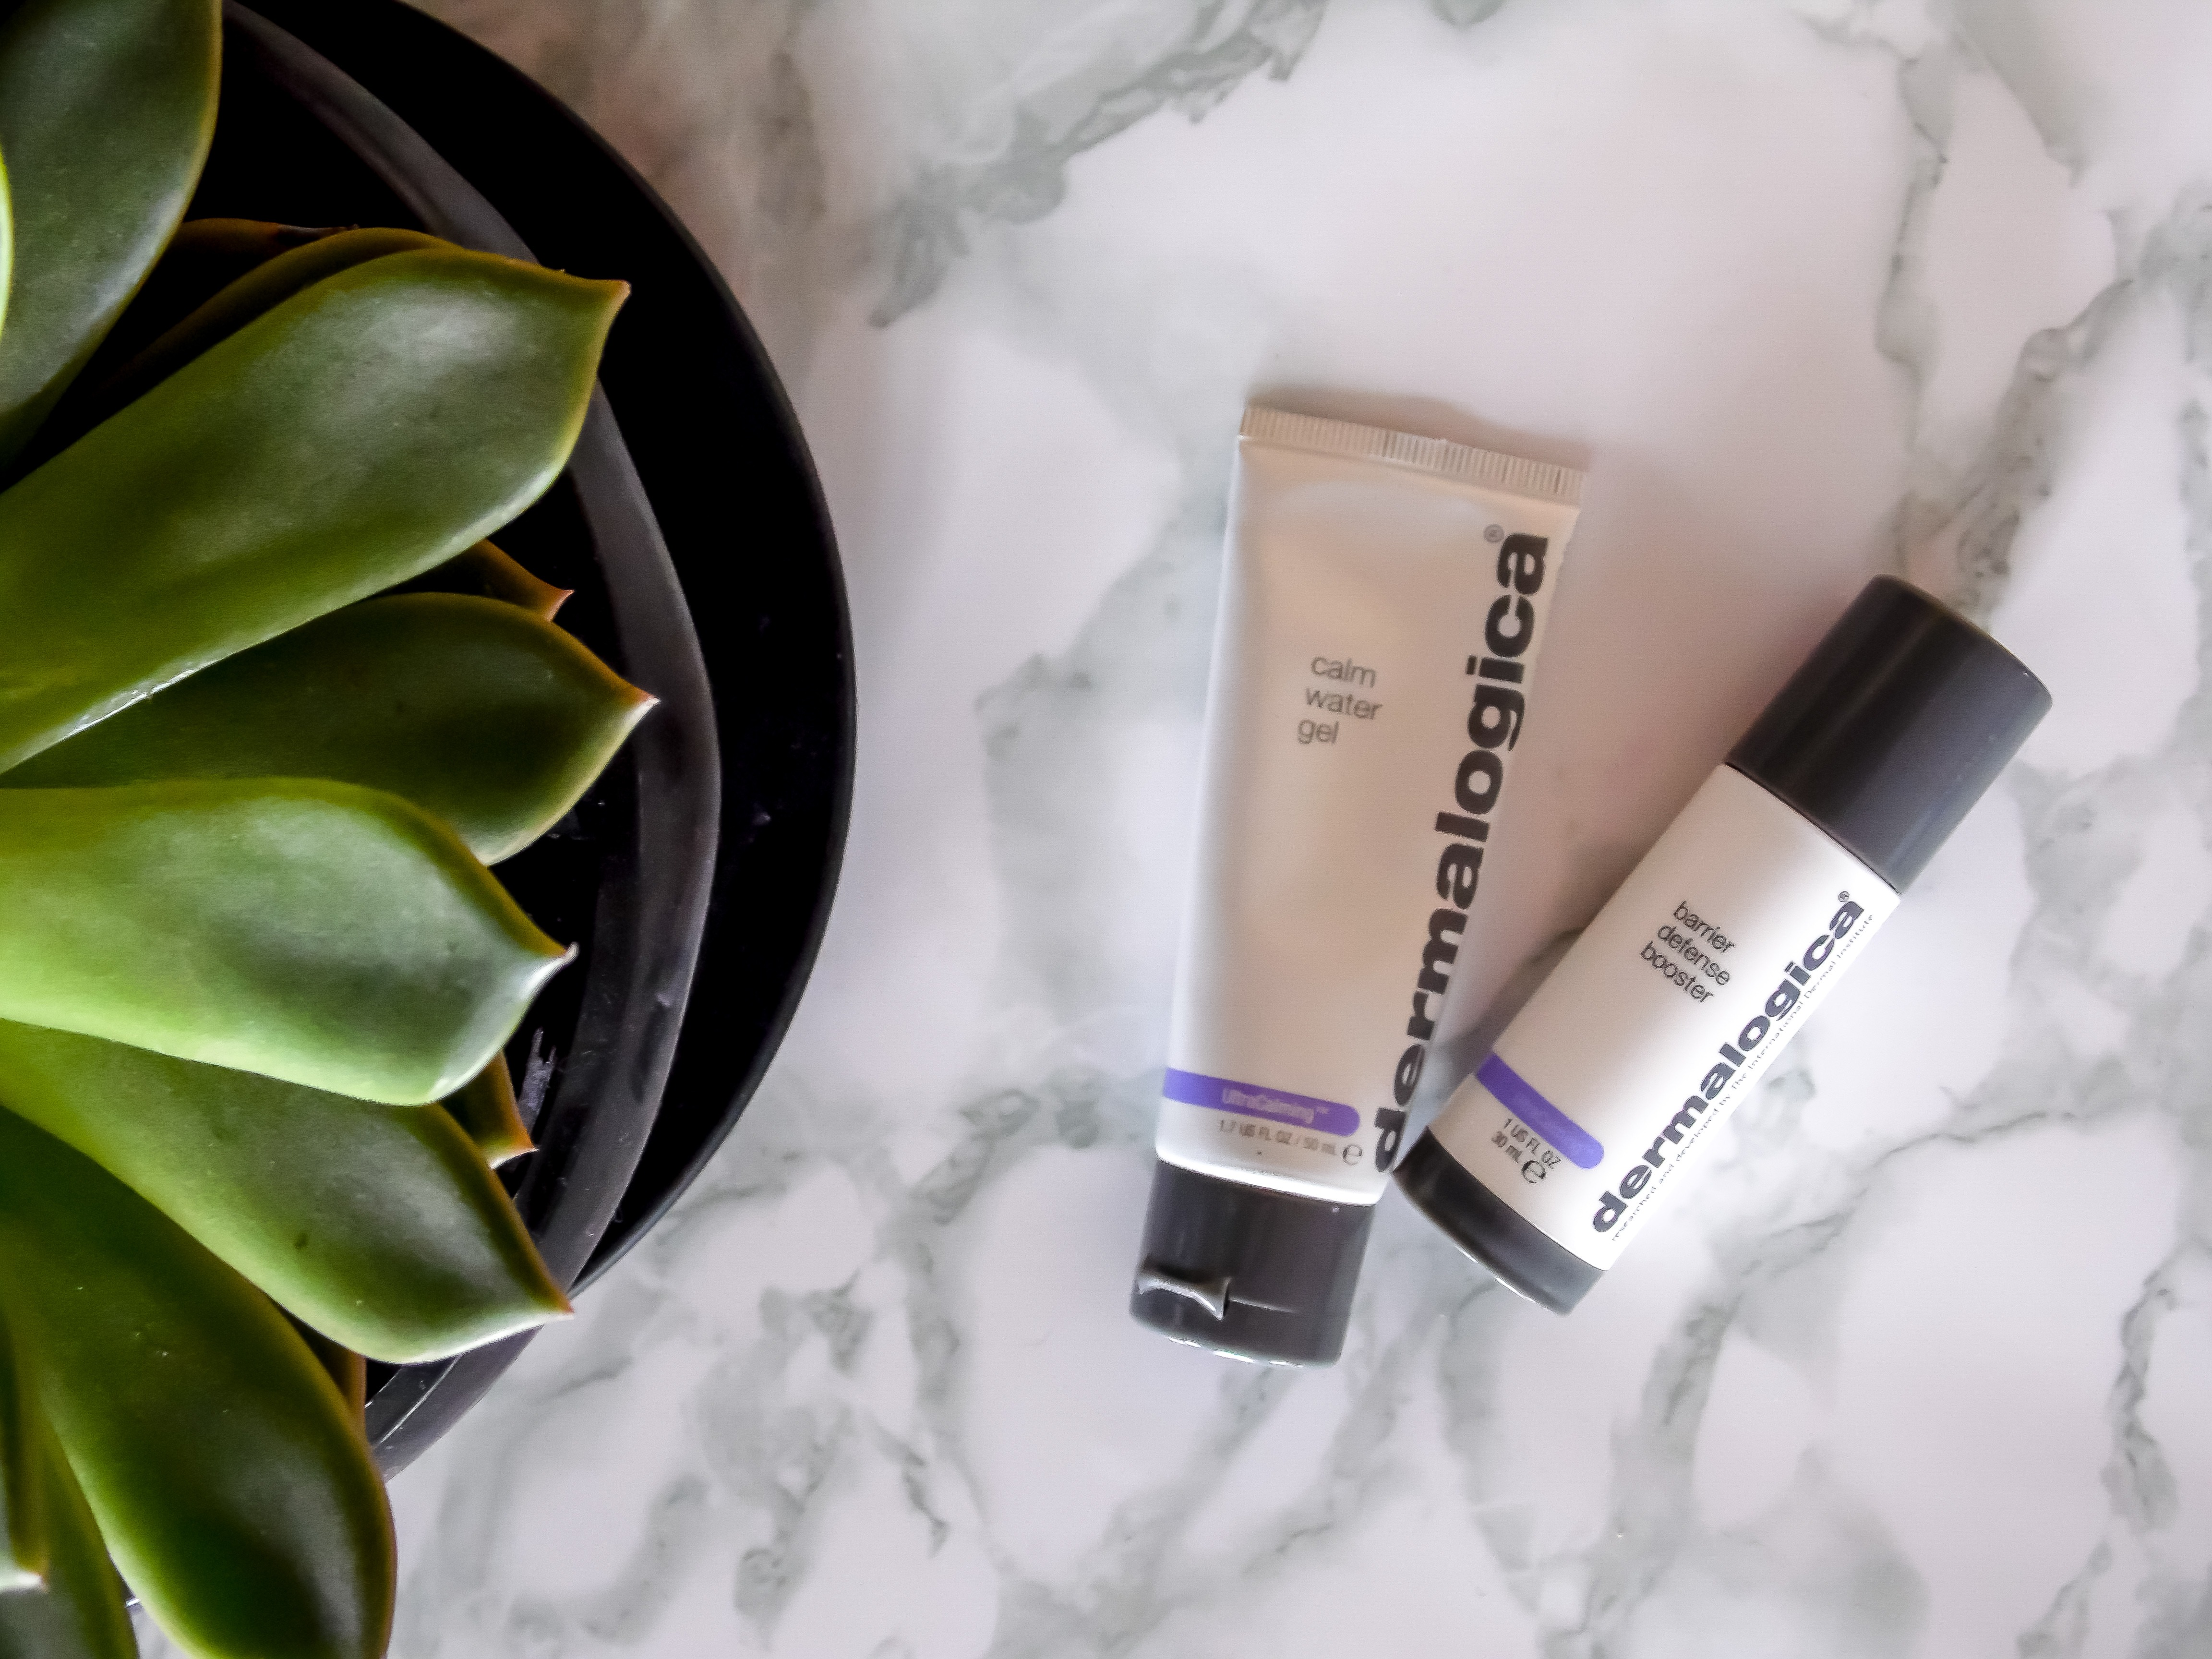 Dermalogica Calm Water Gel and Booster Barrier Defense - By Megan Kelly